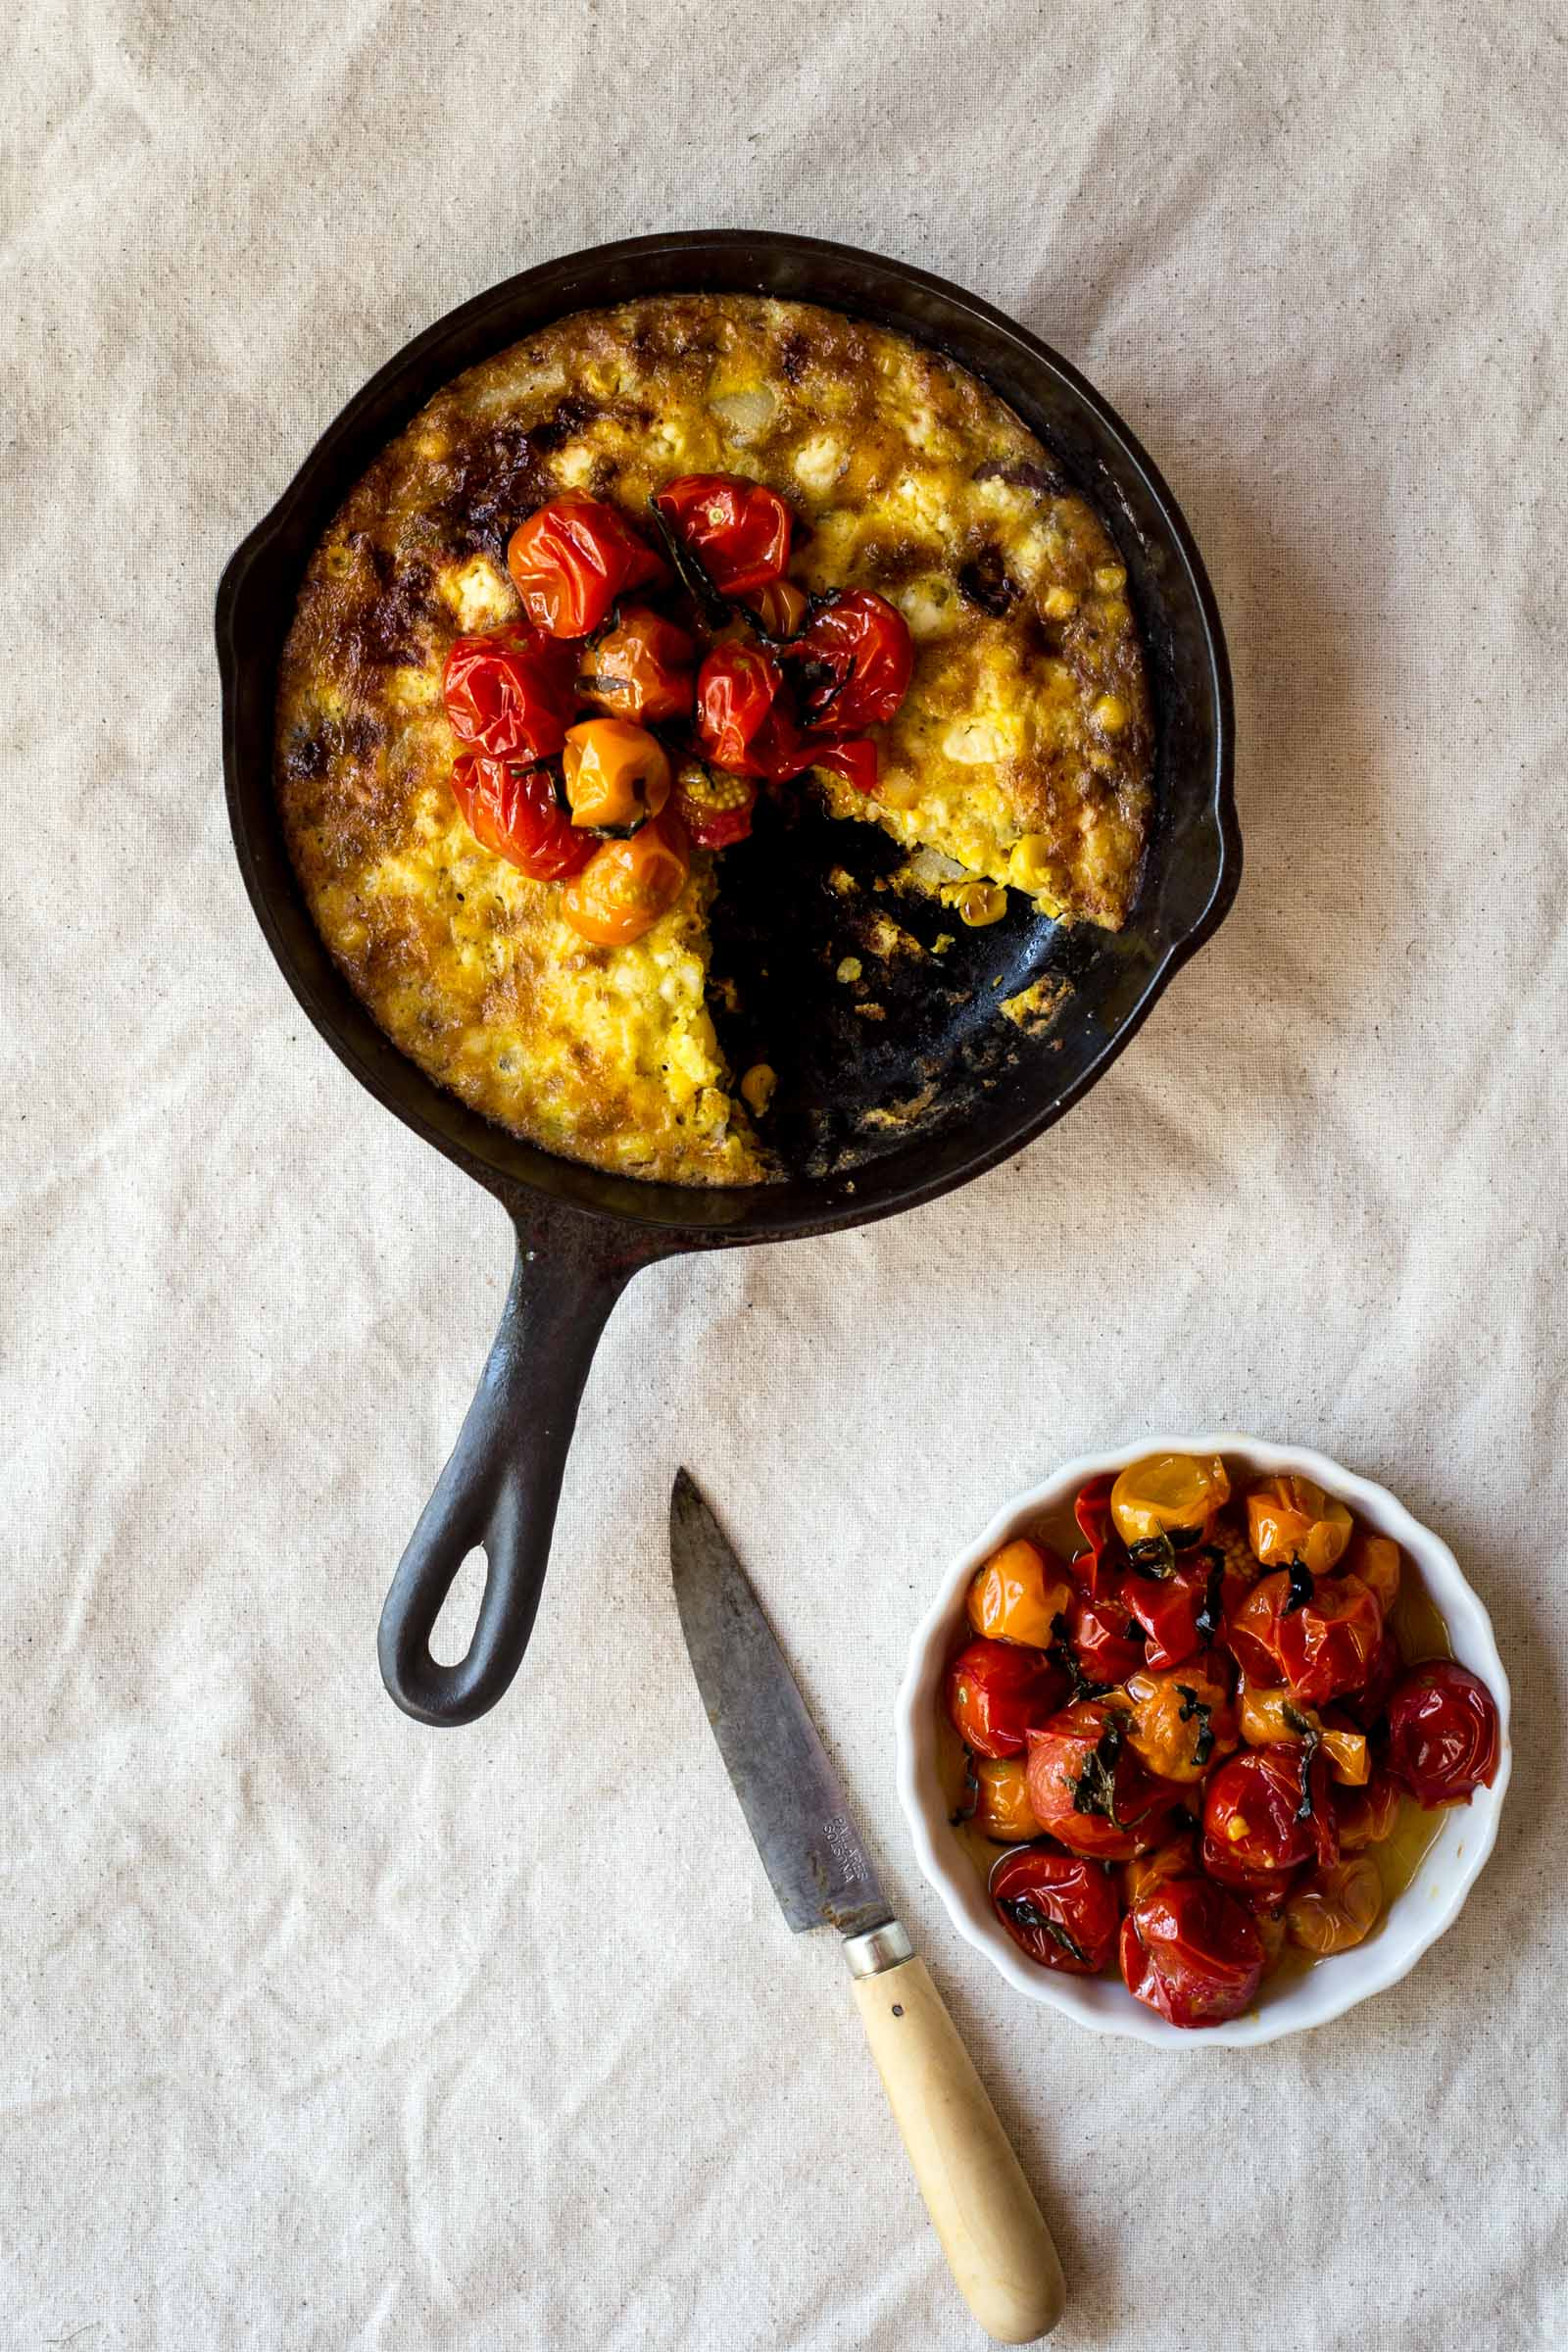 Sweet Corn Frittata with Cherry Tomato Compote